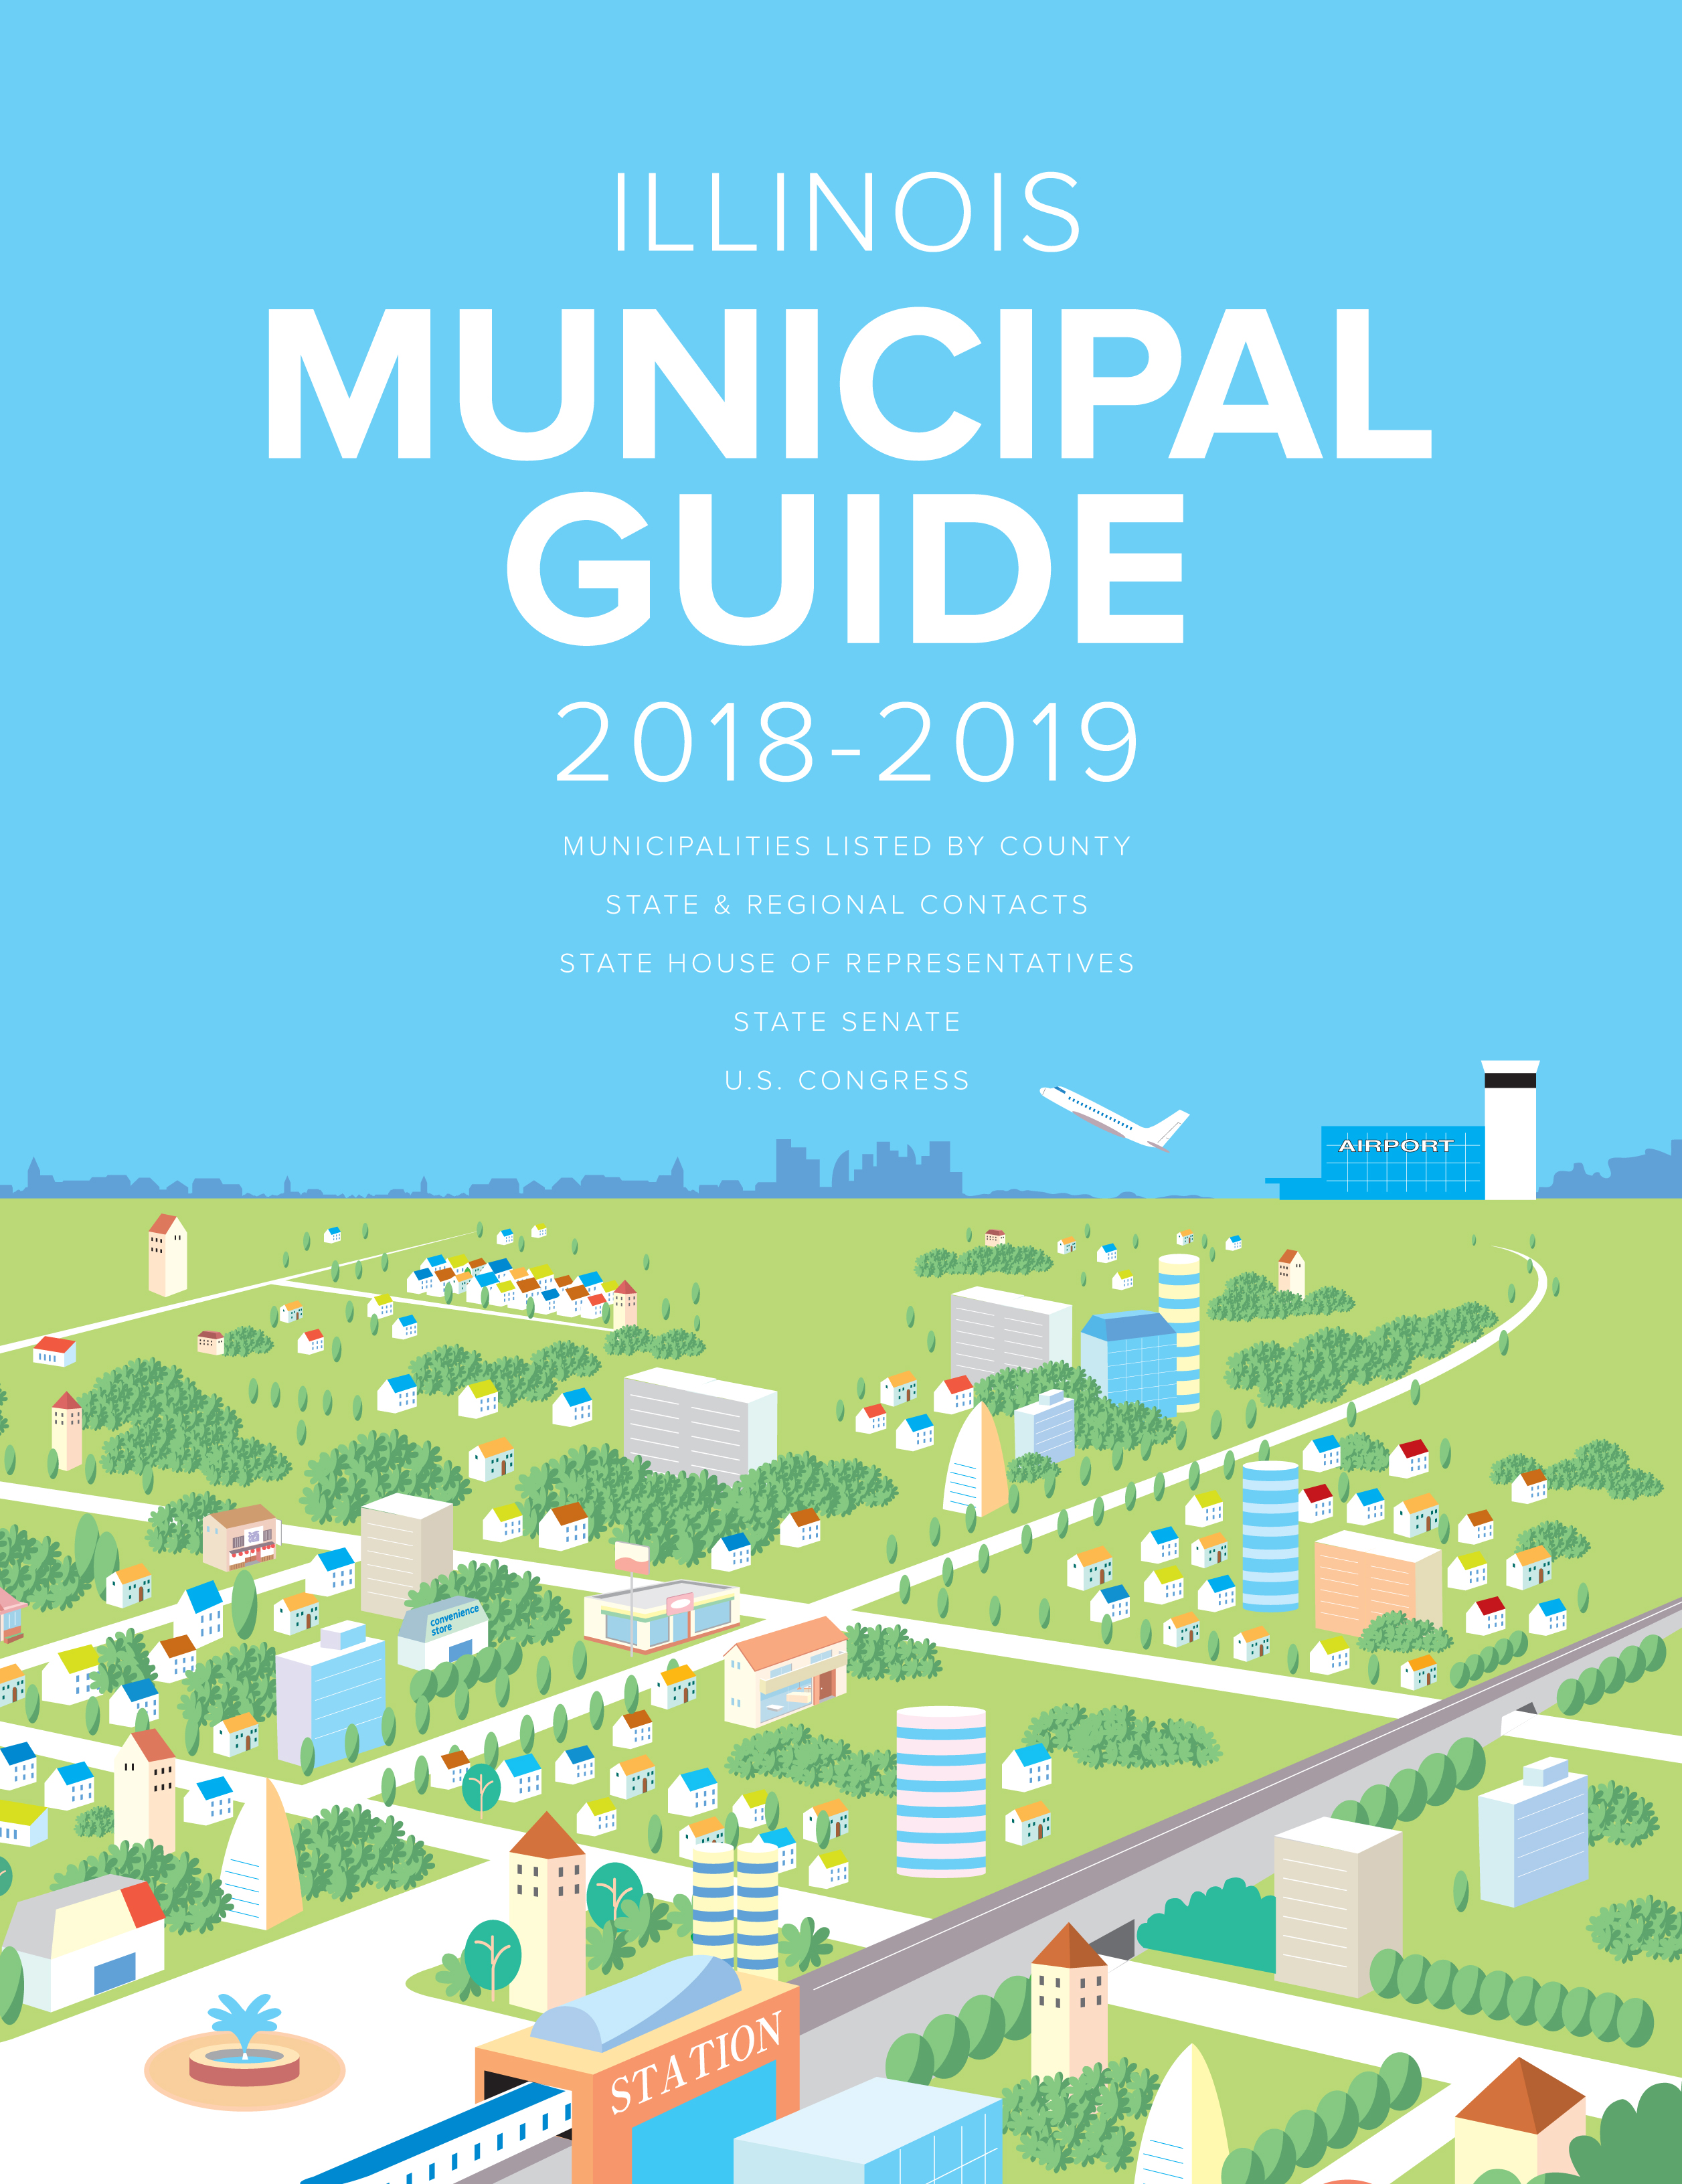 Illinois Municipal Guide cover